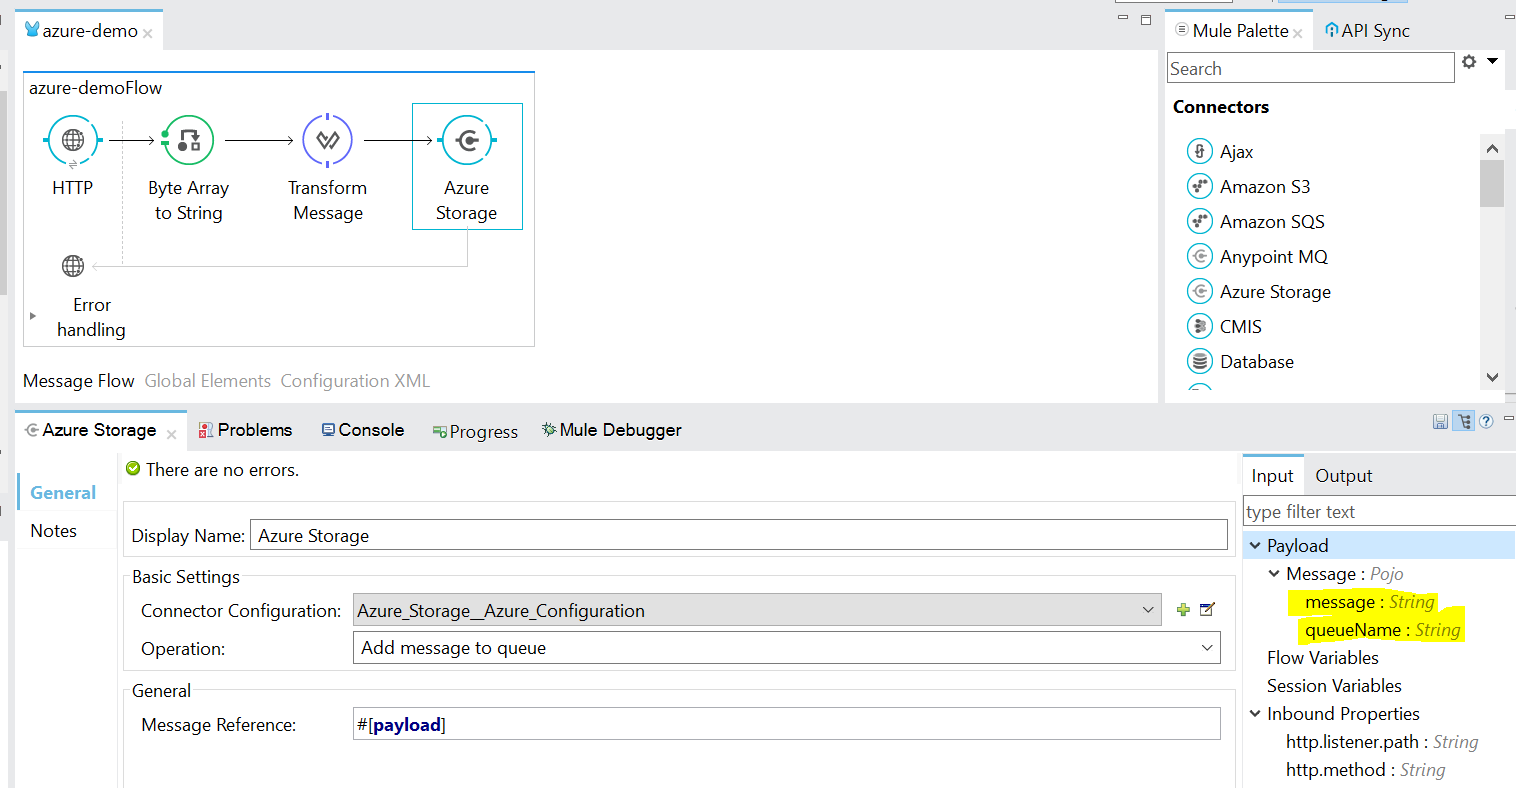 Add message to Azure Queue